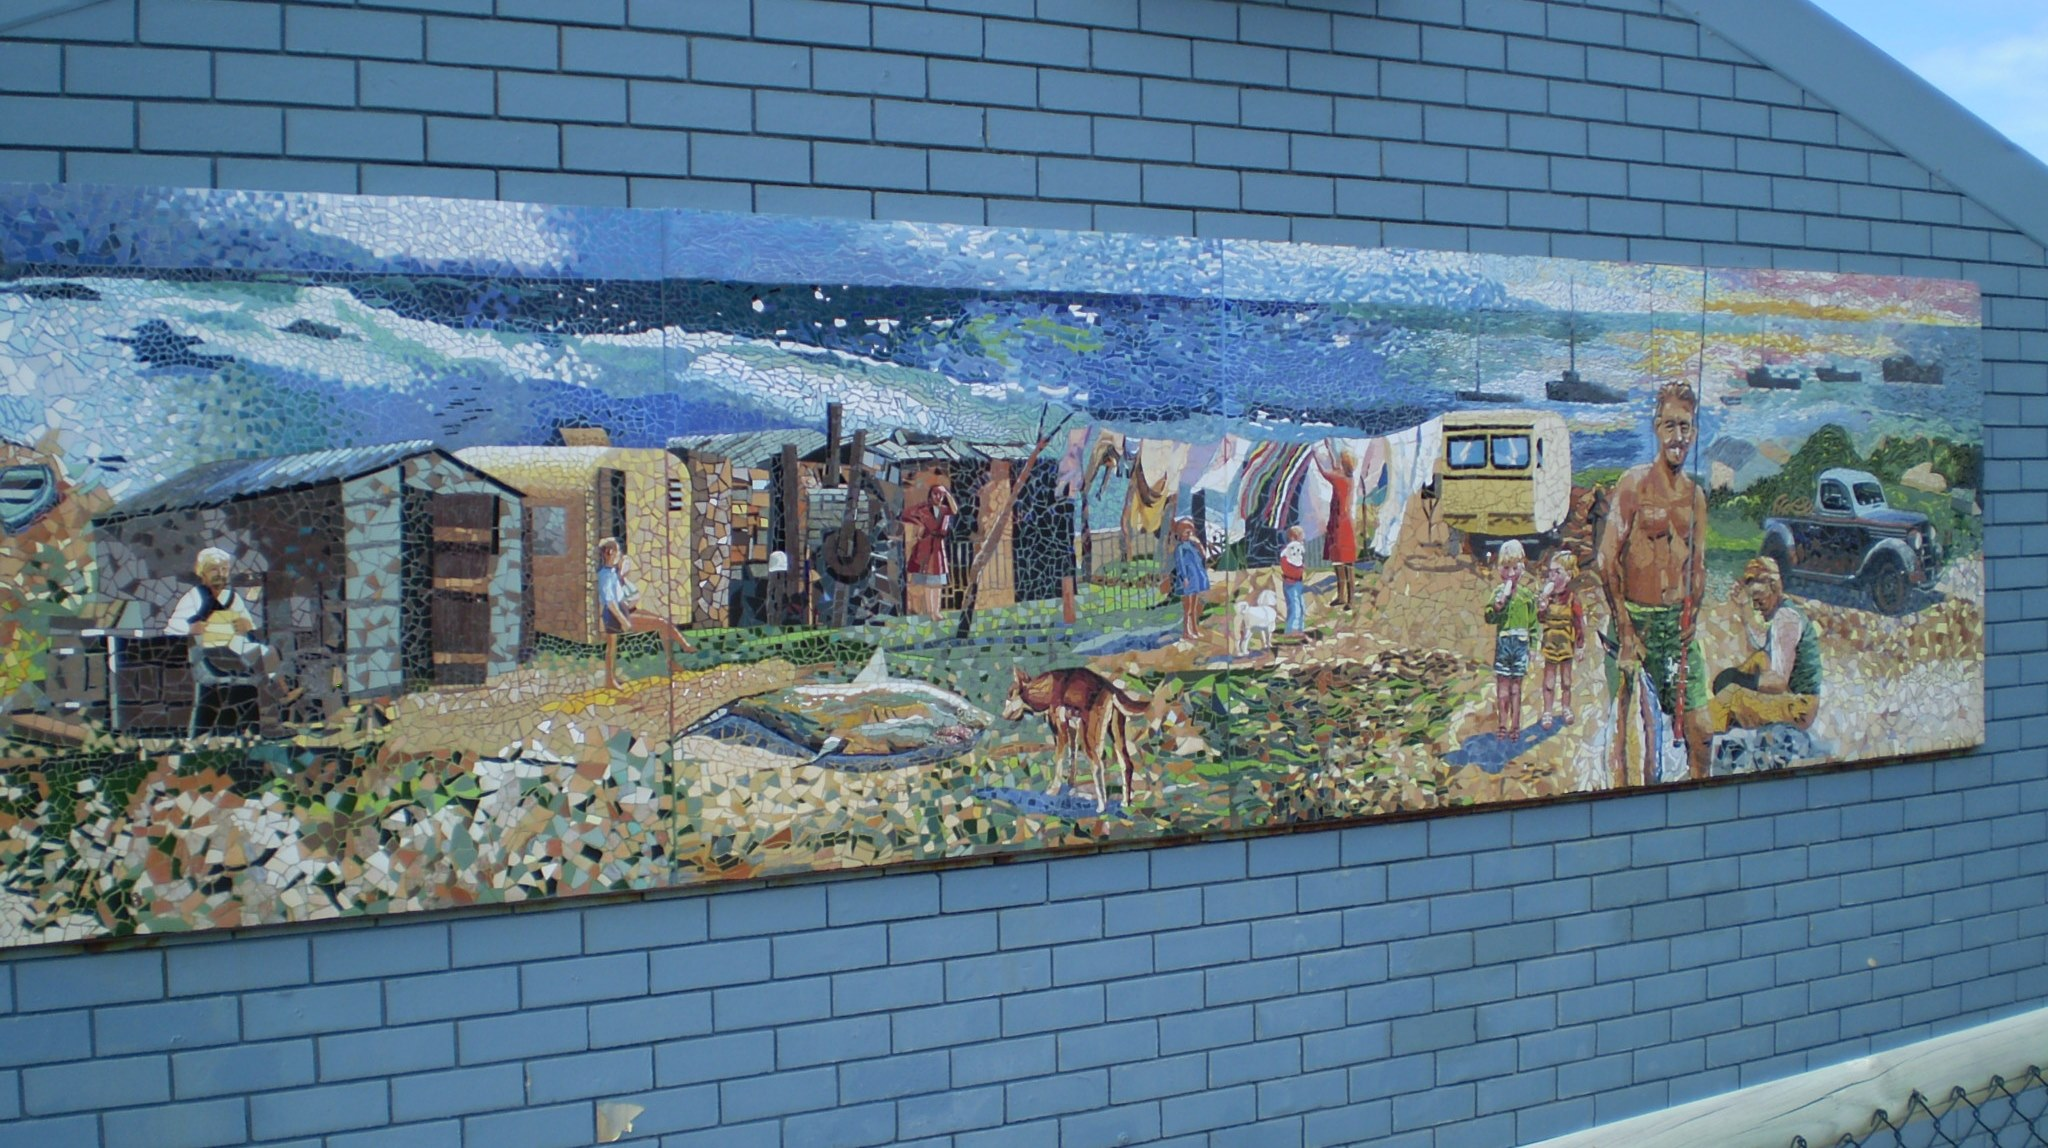 Fishermans hollow mural